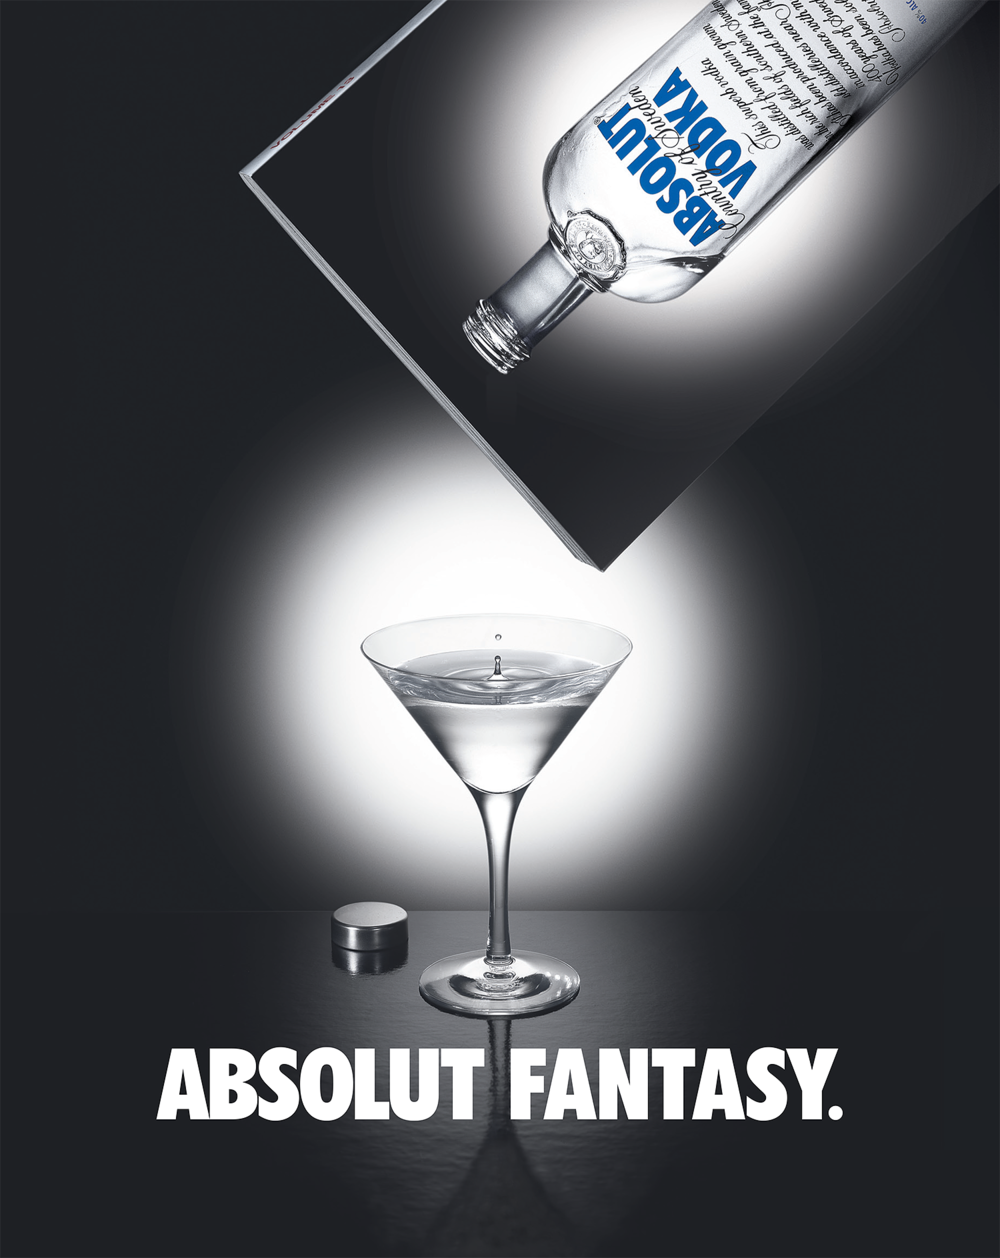 absolut ads 2#01 copy.png